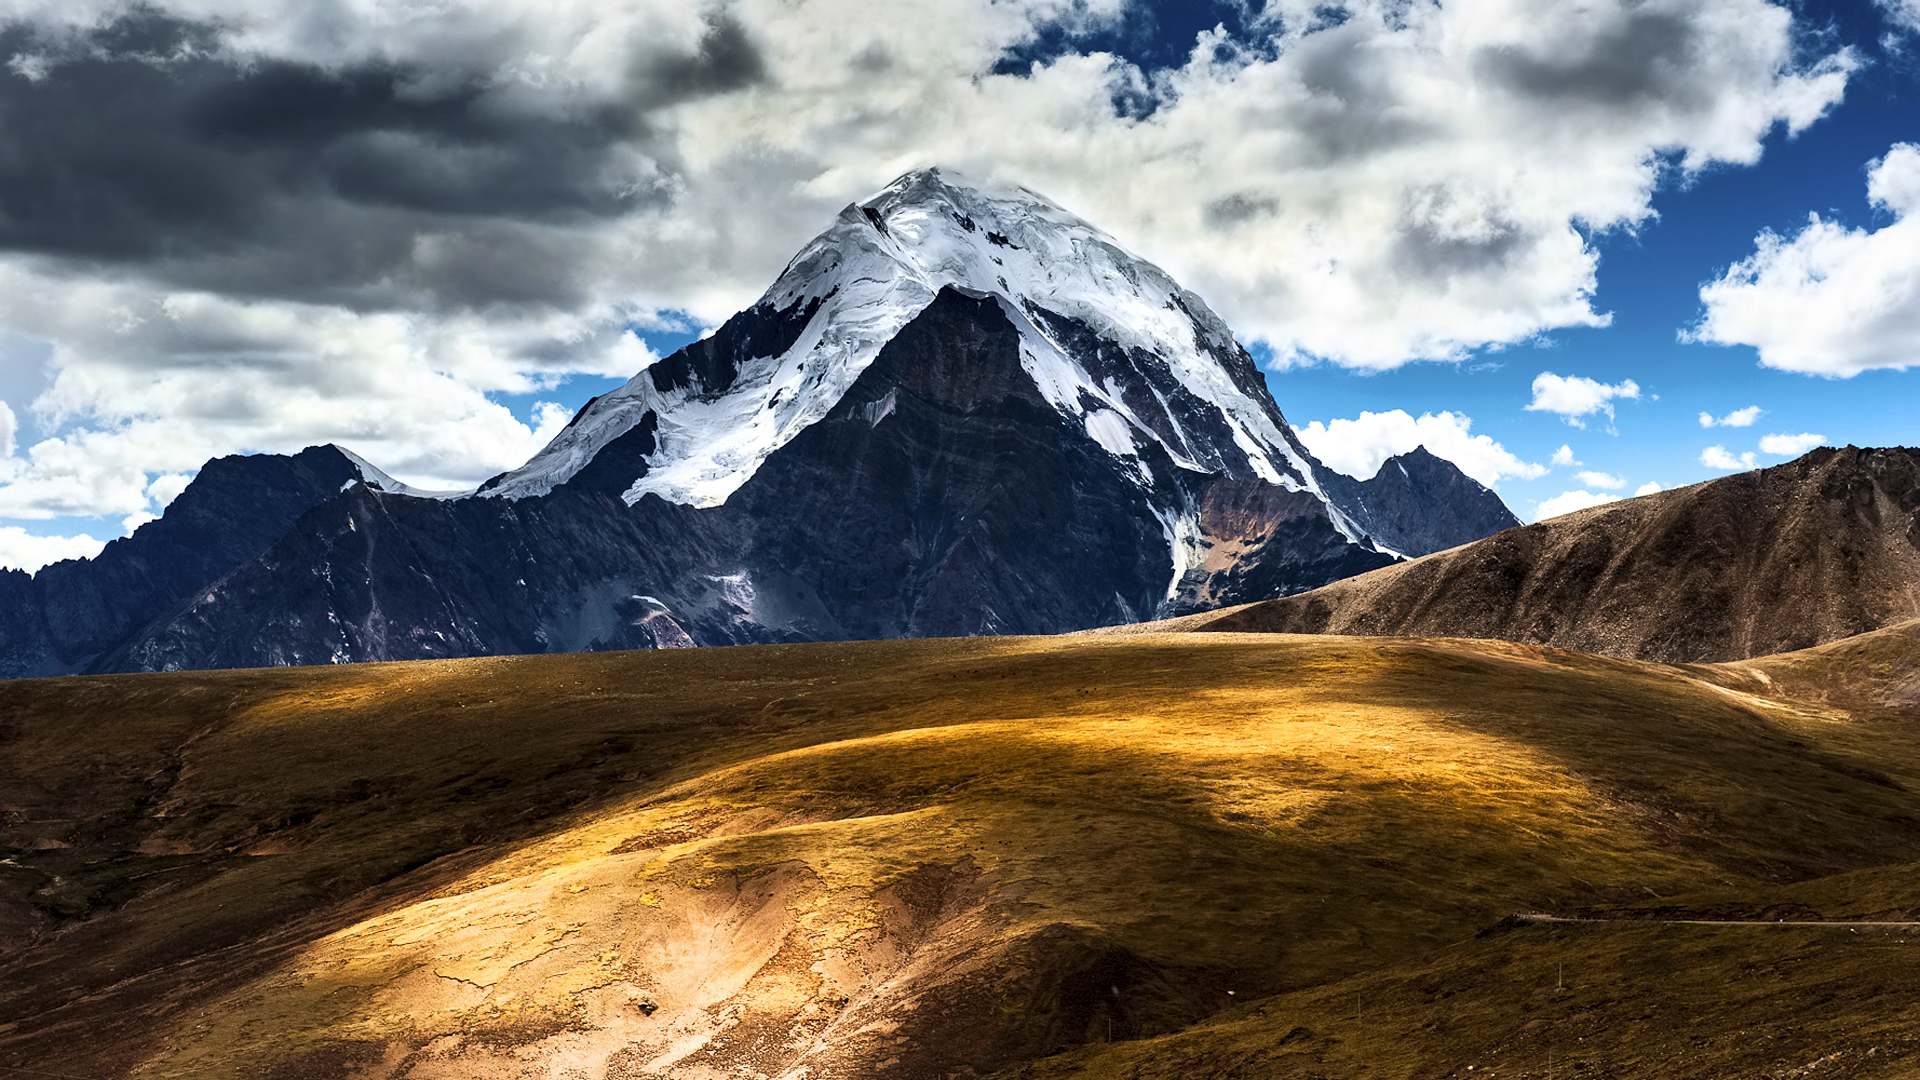 tibet wallpapers high quality | download free